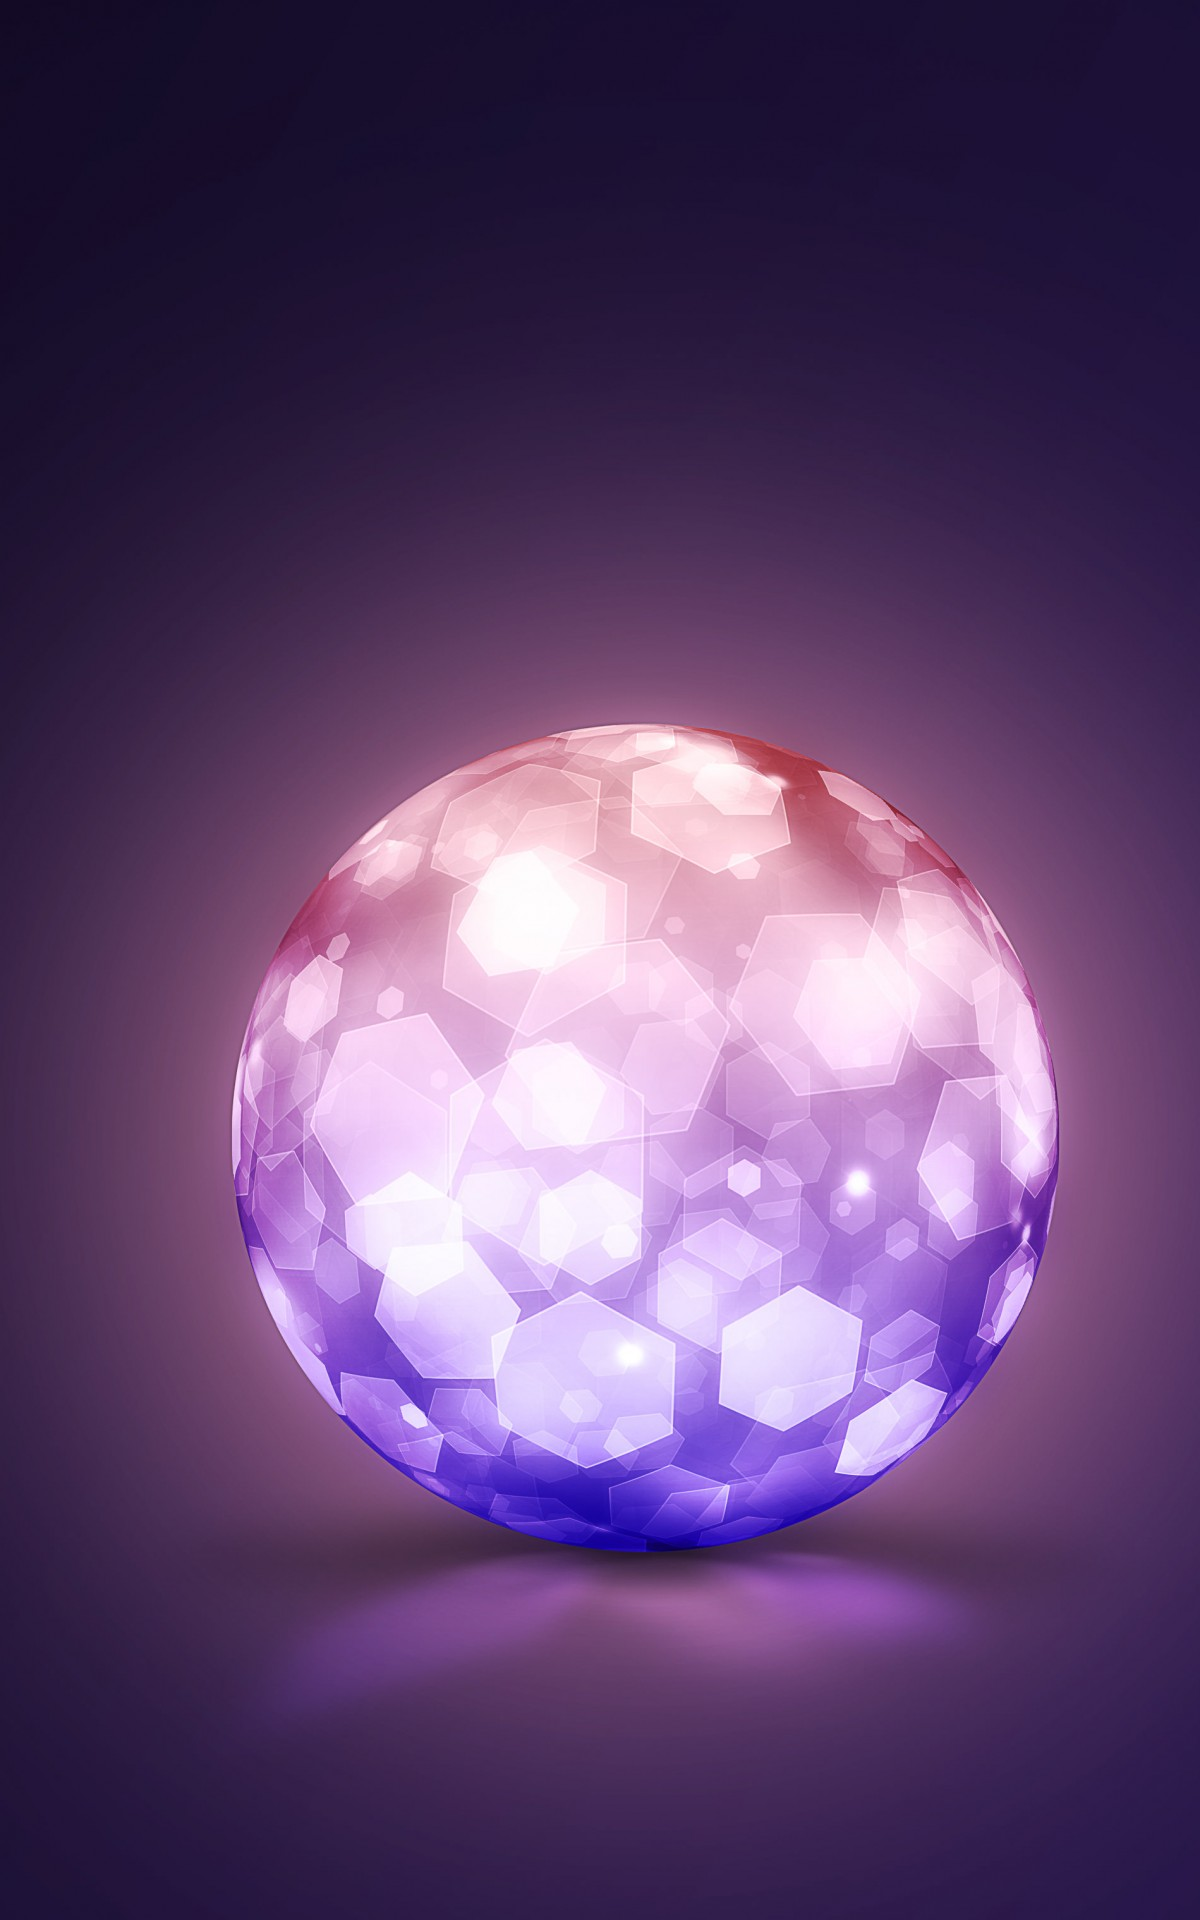 Lightning Ball HD wallpaper for Kindle Fire HDX   HDwallpapersnet 1200x1920